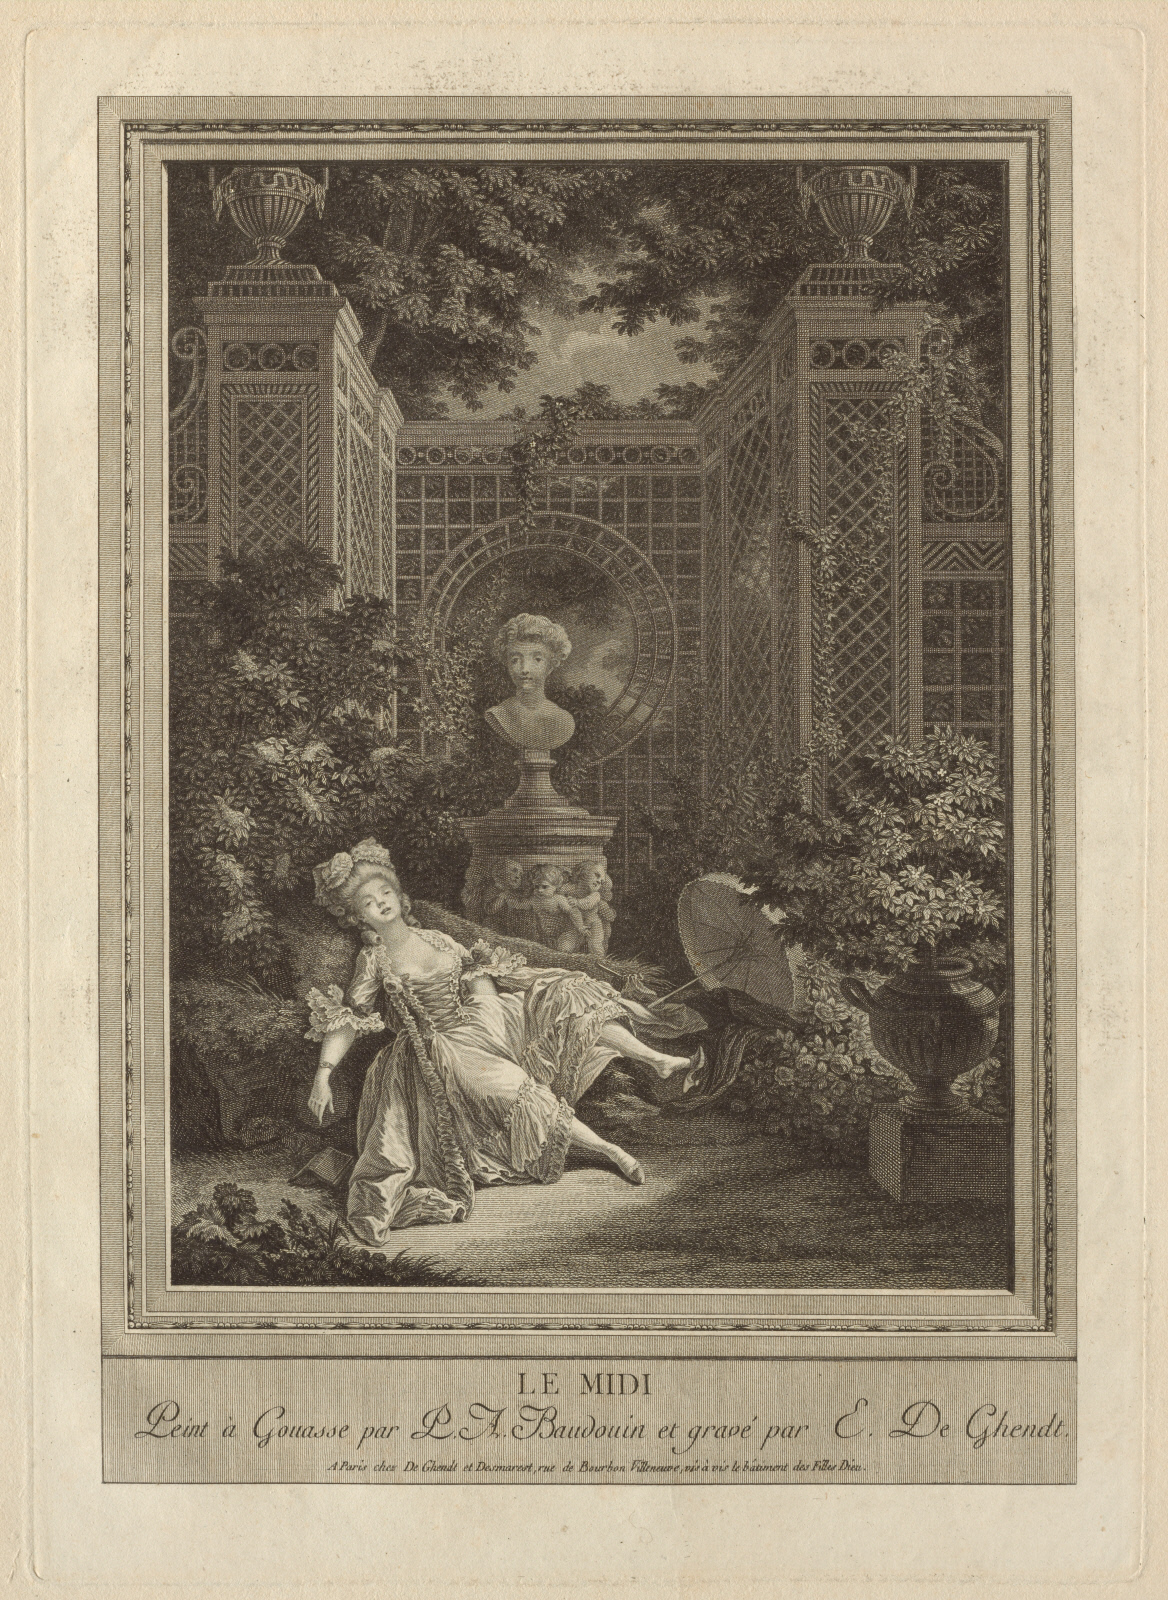 Pierre-Antoine Baudouin's (1723-1769)  Le midi,  an etching which explicitly links women's reading to eroticism (even before the 1790s)